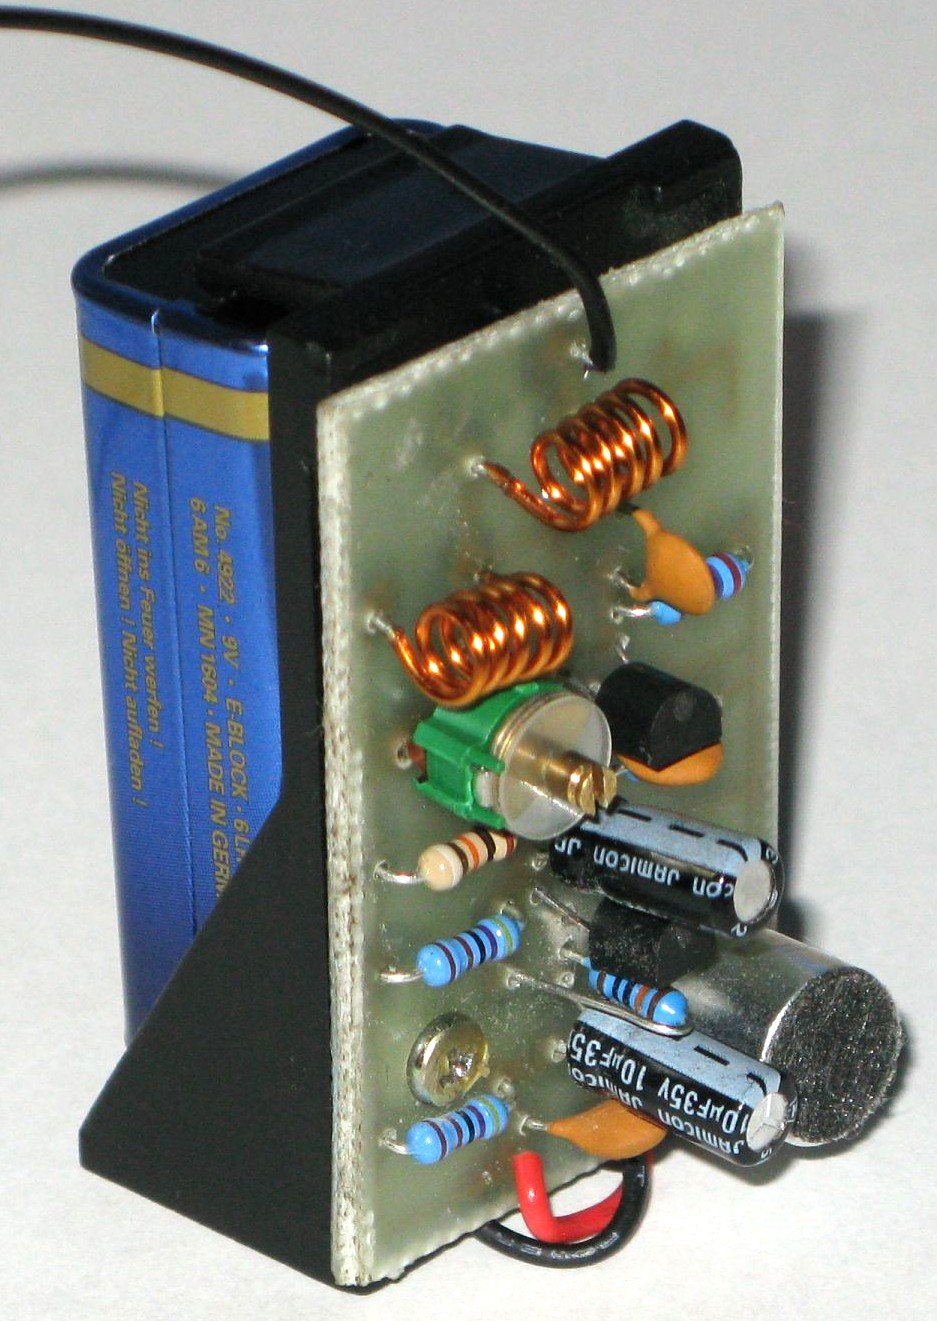 https://i1.wp.com/electronics-diy.com/schematics/1268/portable-fm-transmitter.jpg